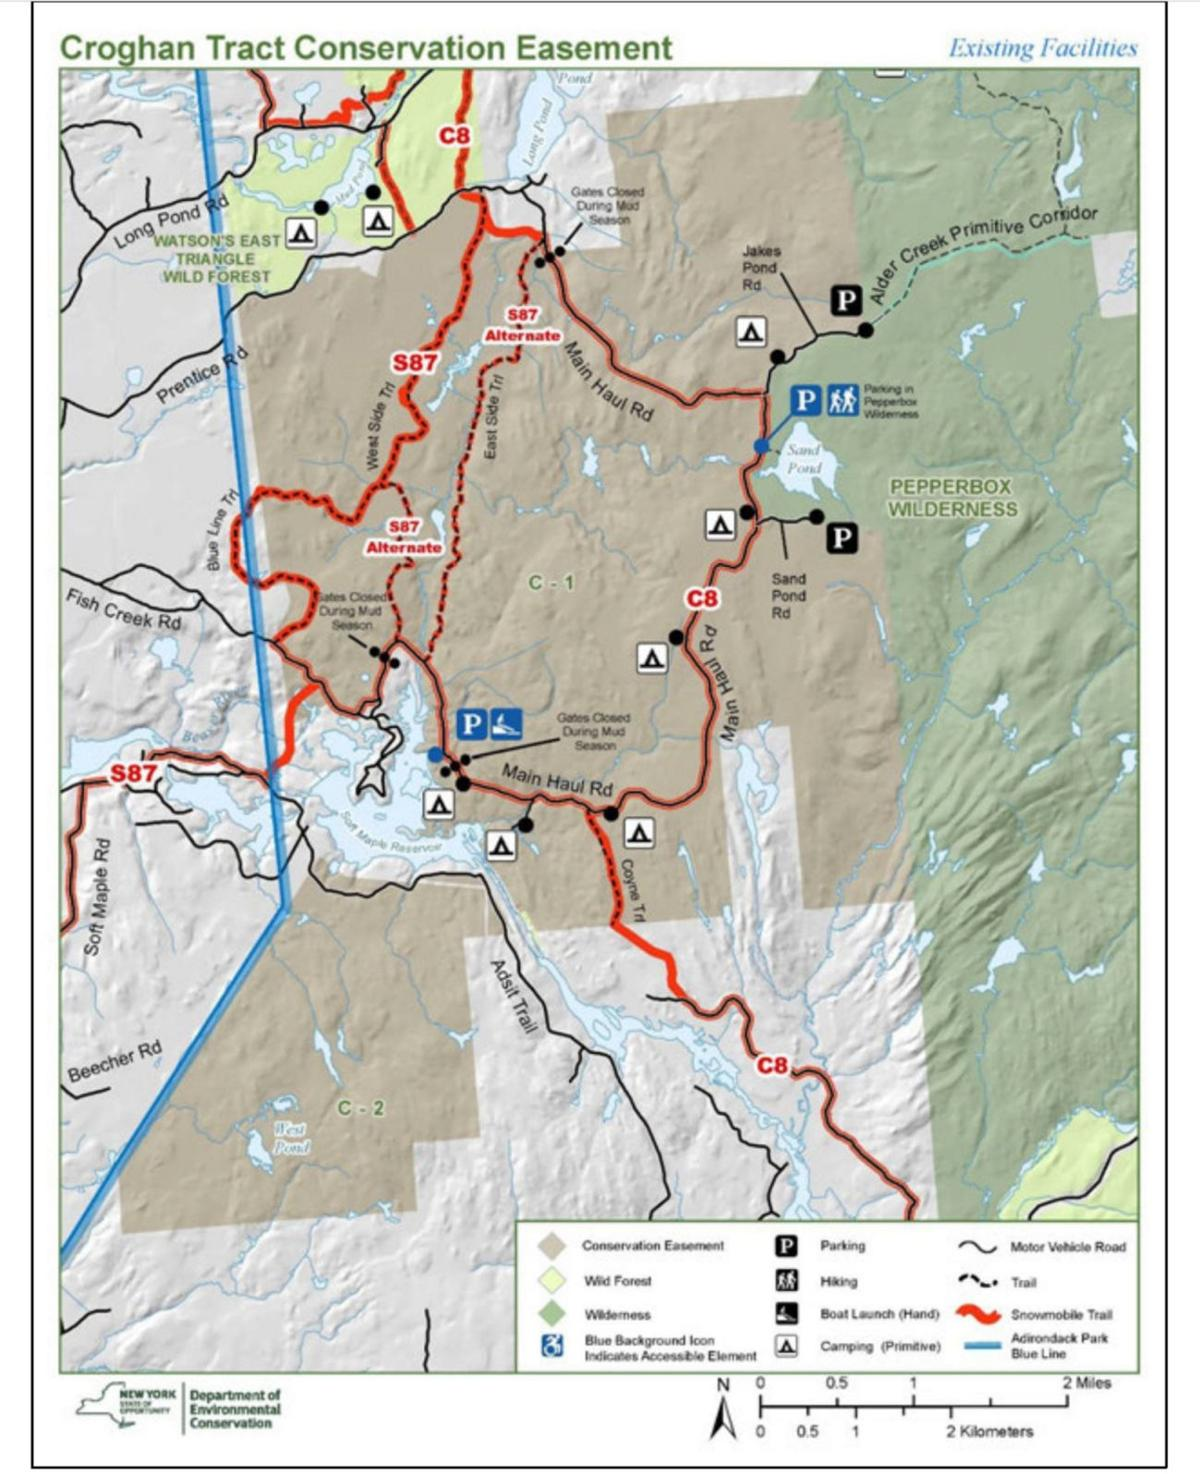 Input sought on Croghan Tract plan